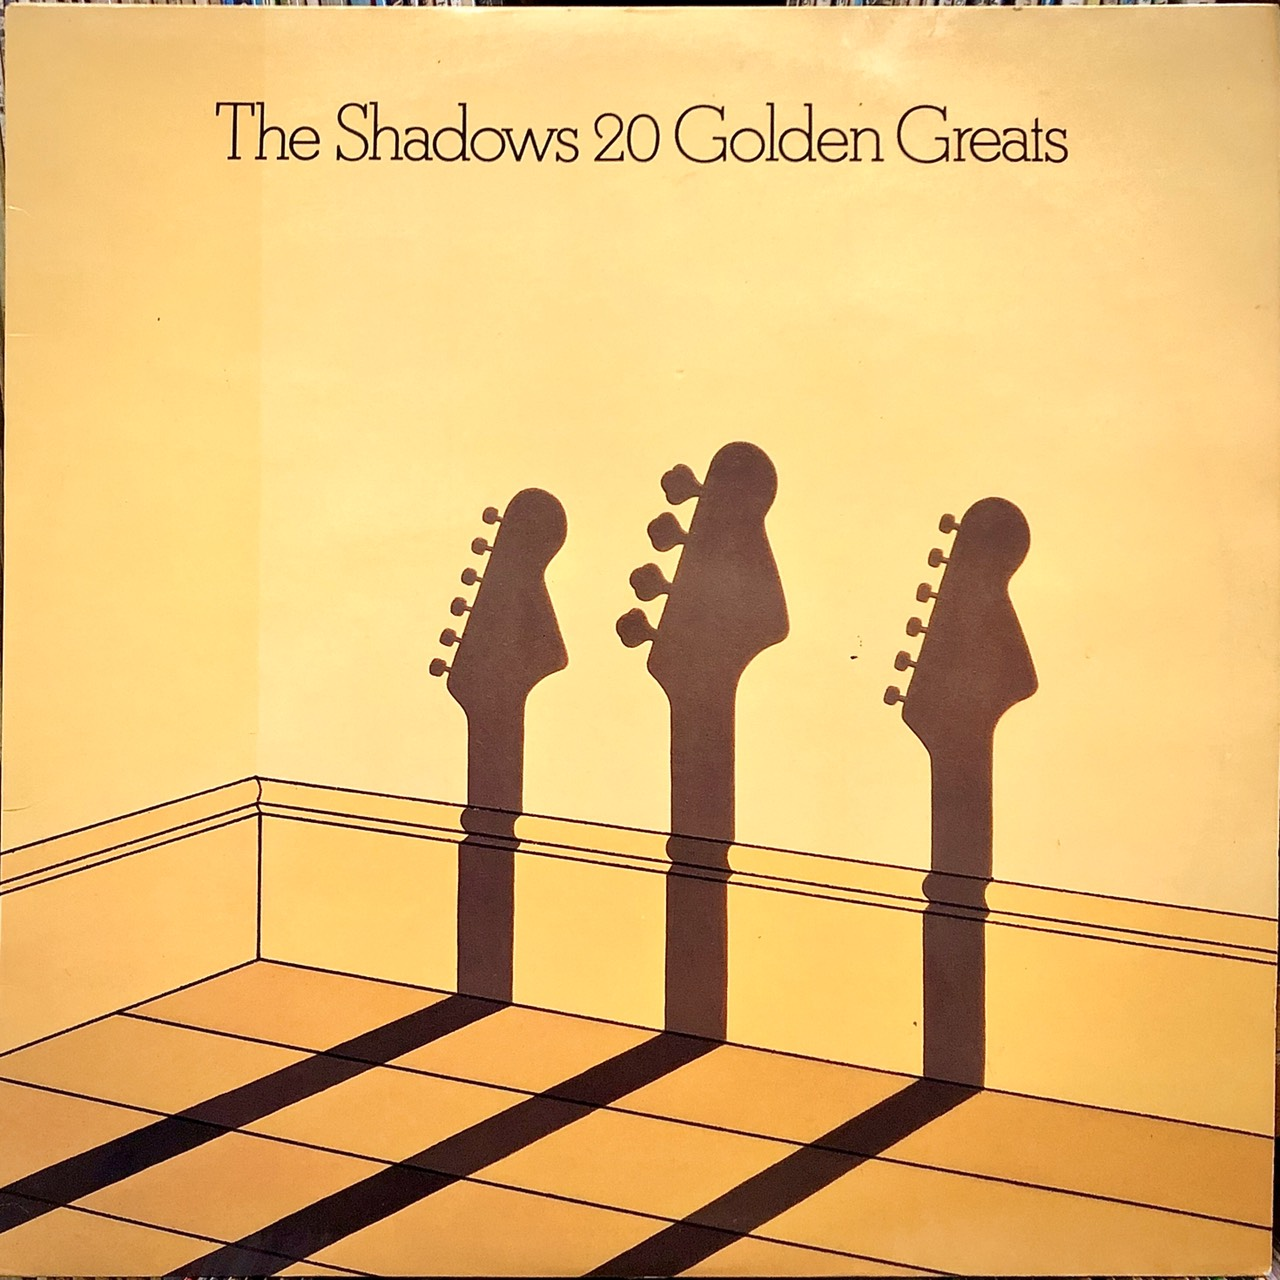 dia-than-the-shadows-20-golden-greats